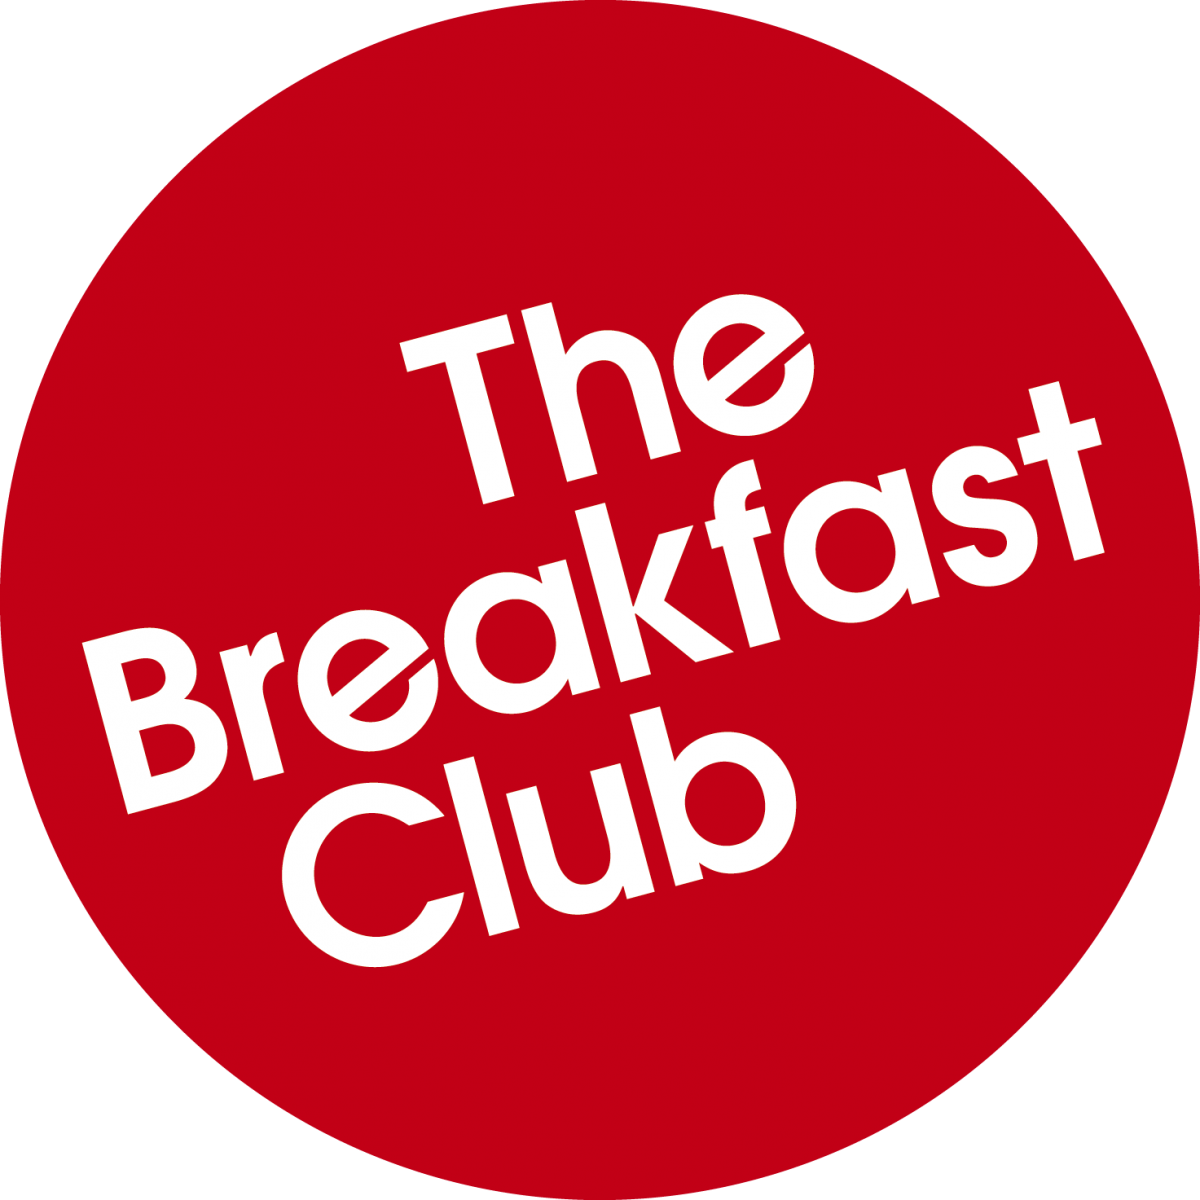 The Breakfast Club logo